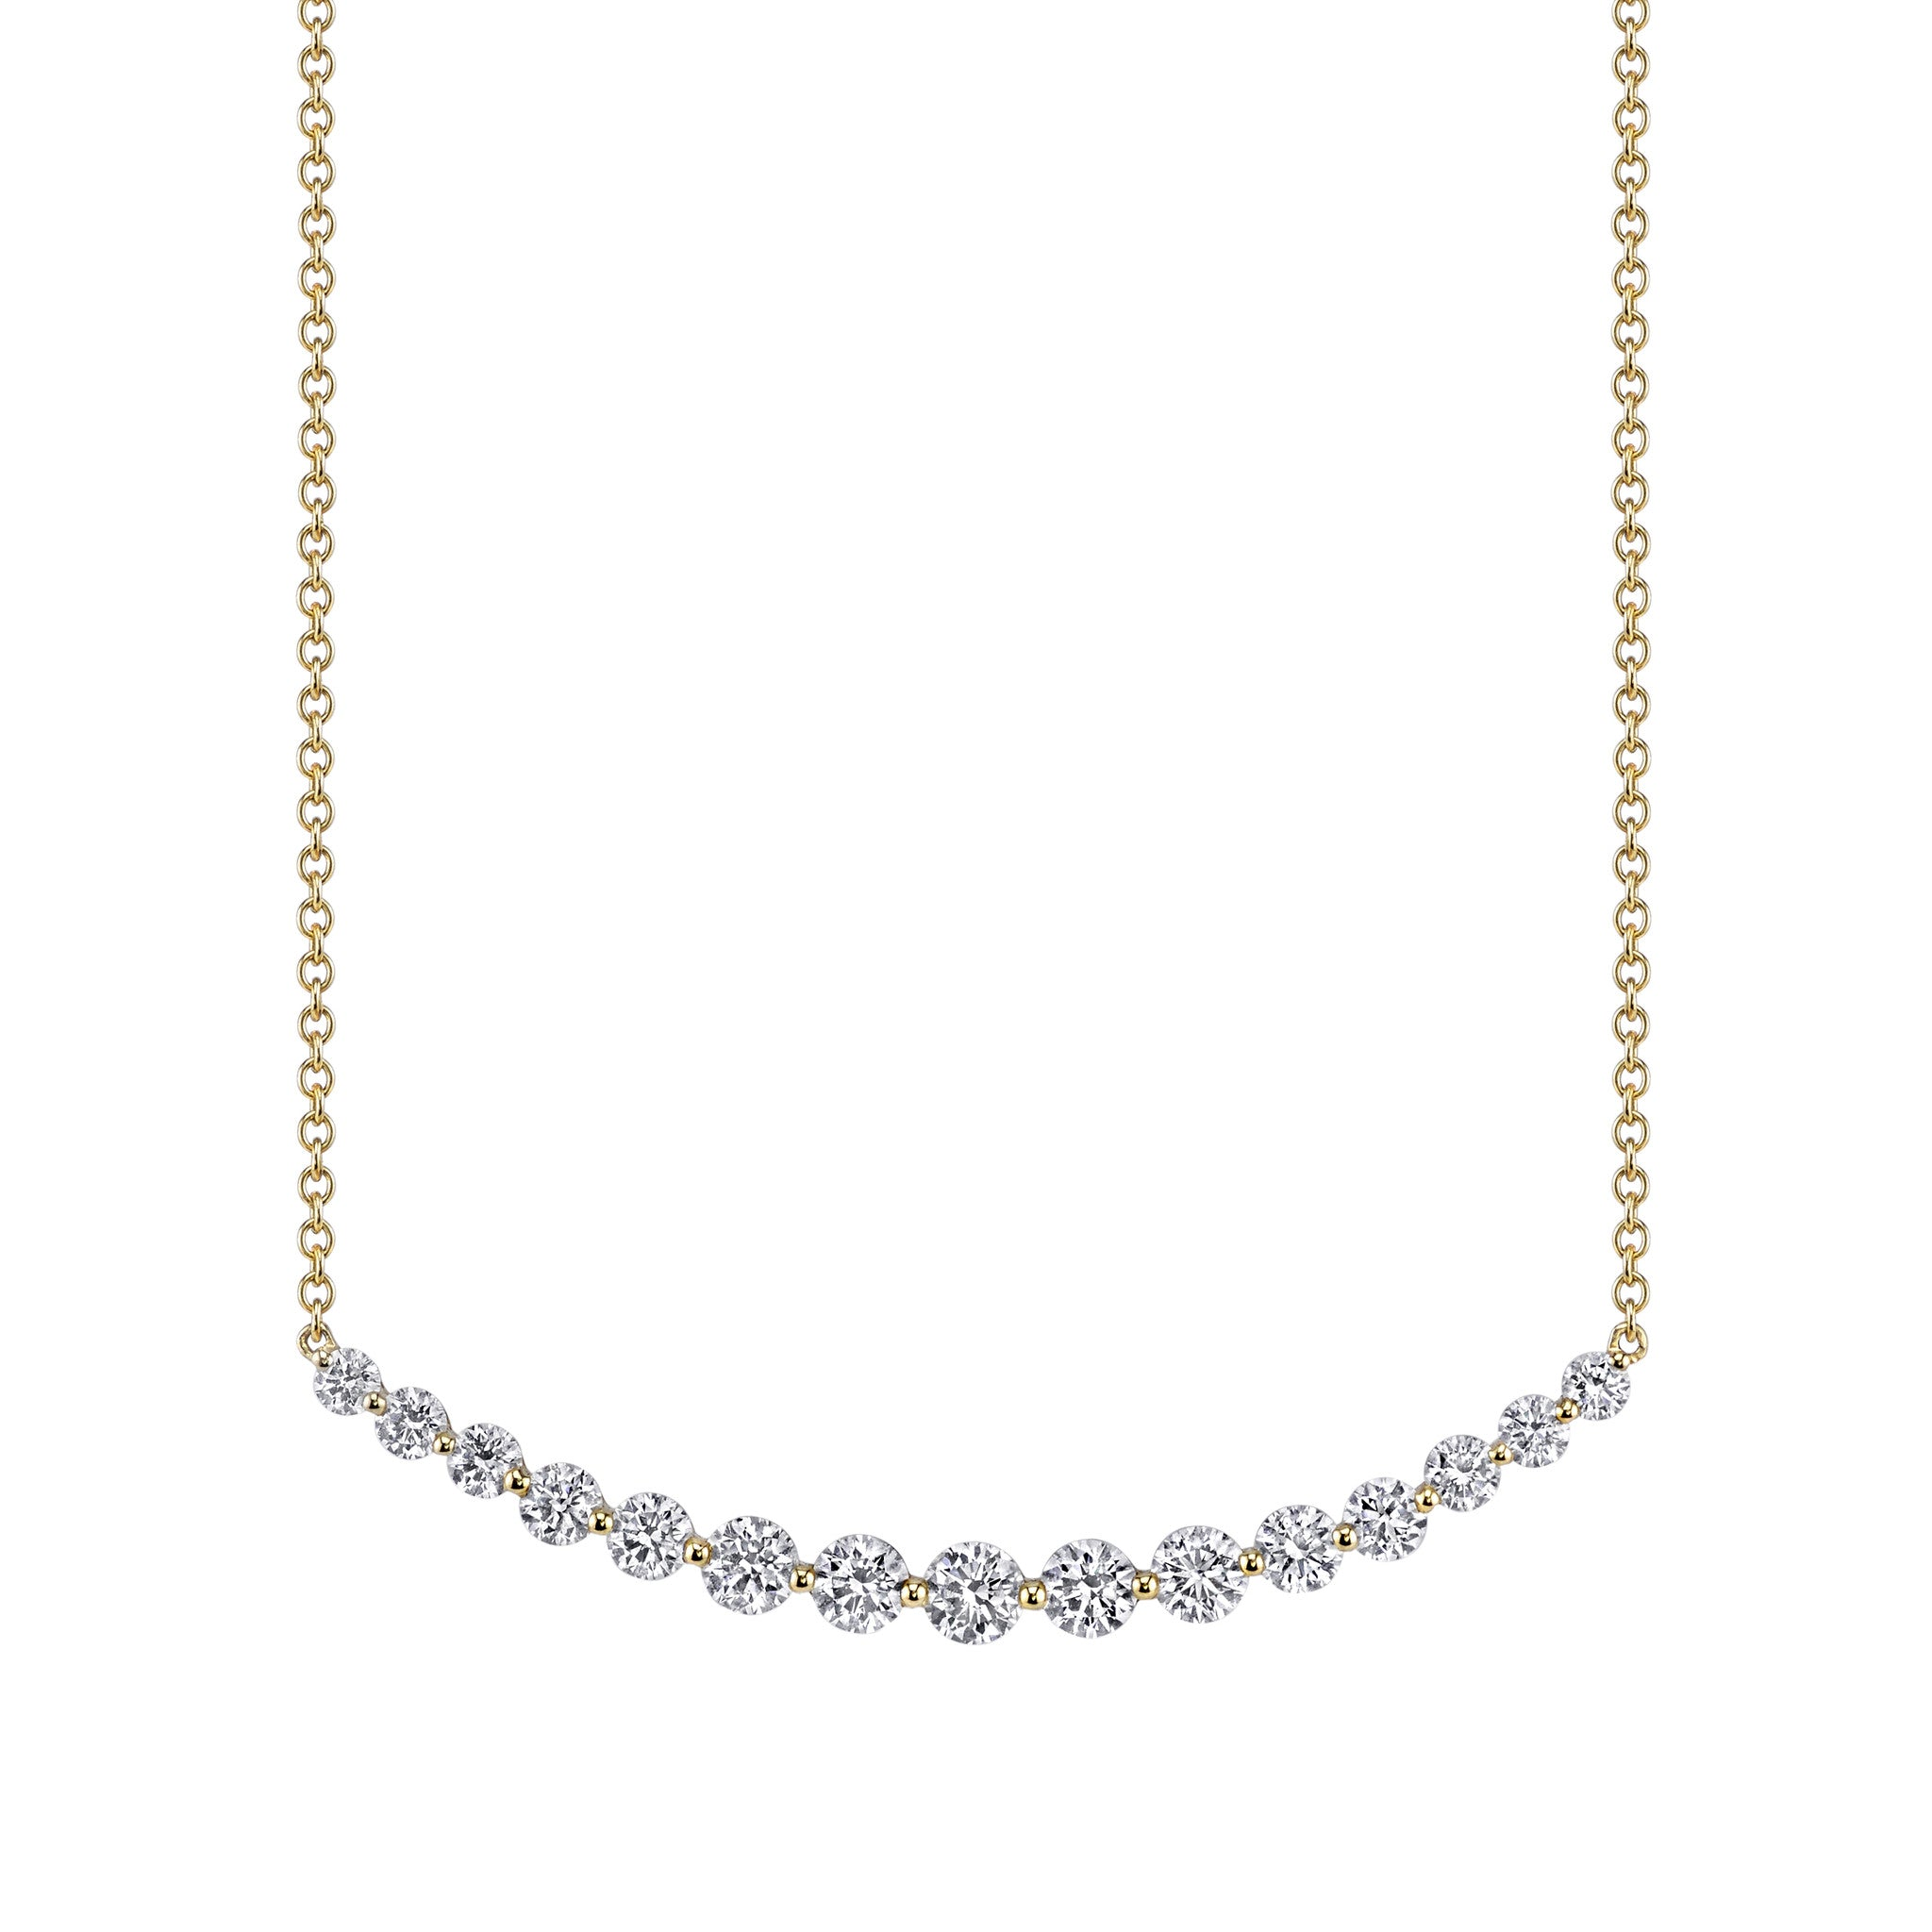 twisted cut tone marquise round two necklace pnd pendant real charm diamond swirl chain white gold marquis solitaire